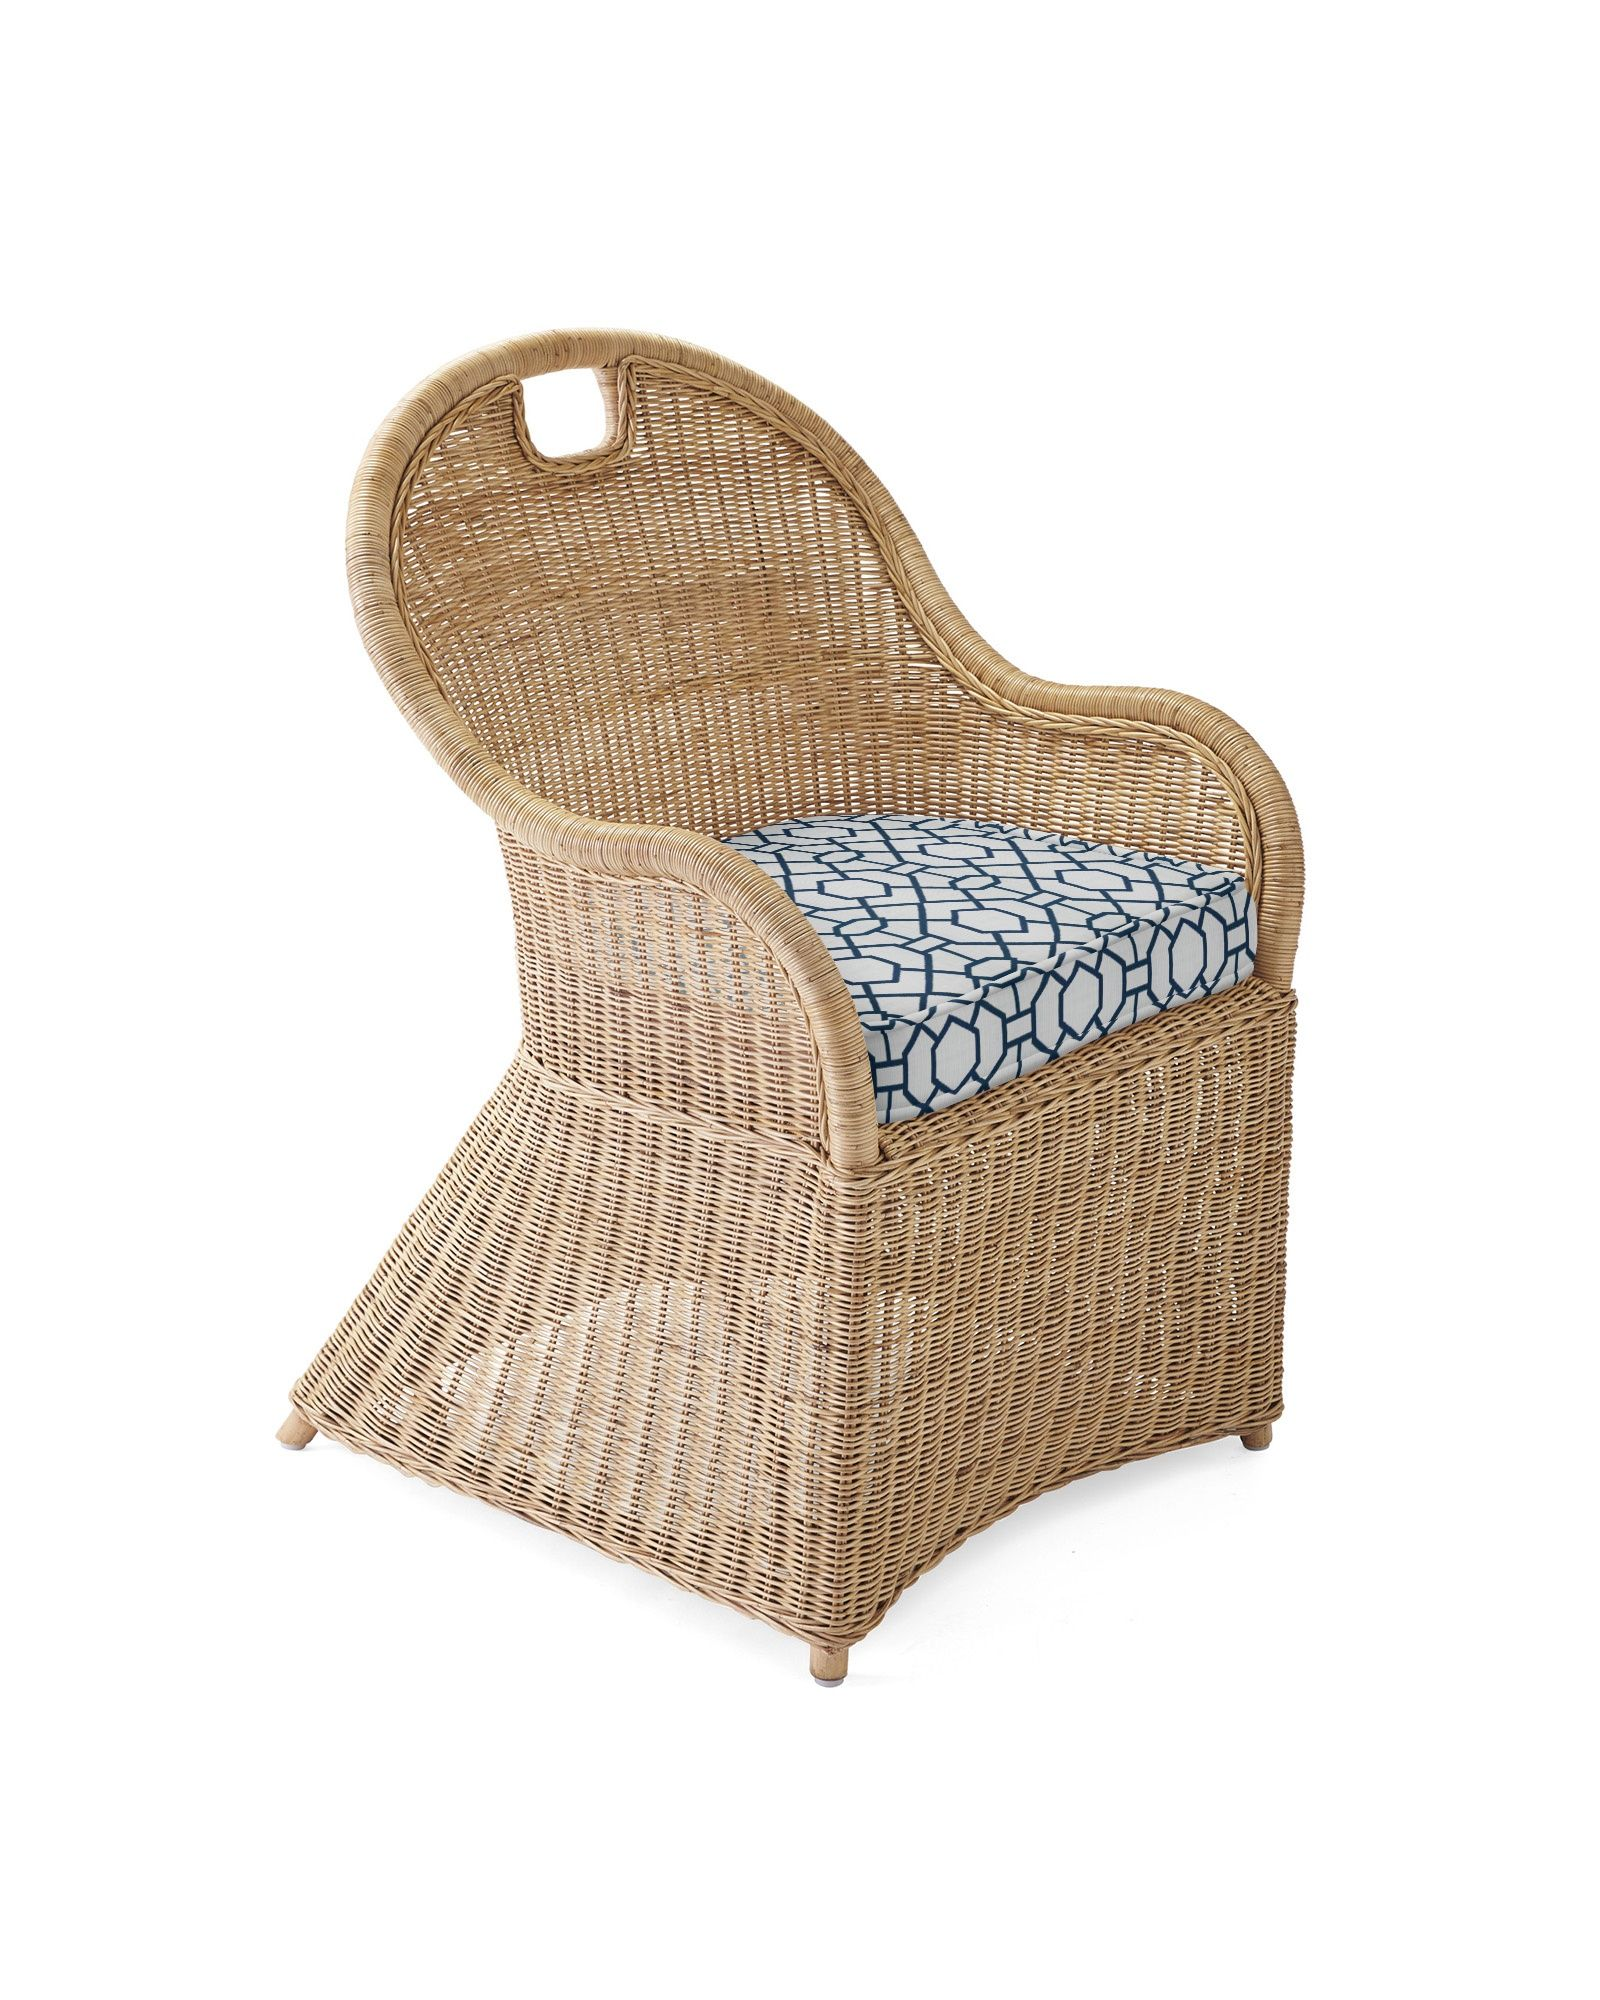 Shore Dining Chair | Dining chair cushions, Dining chairs ...